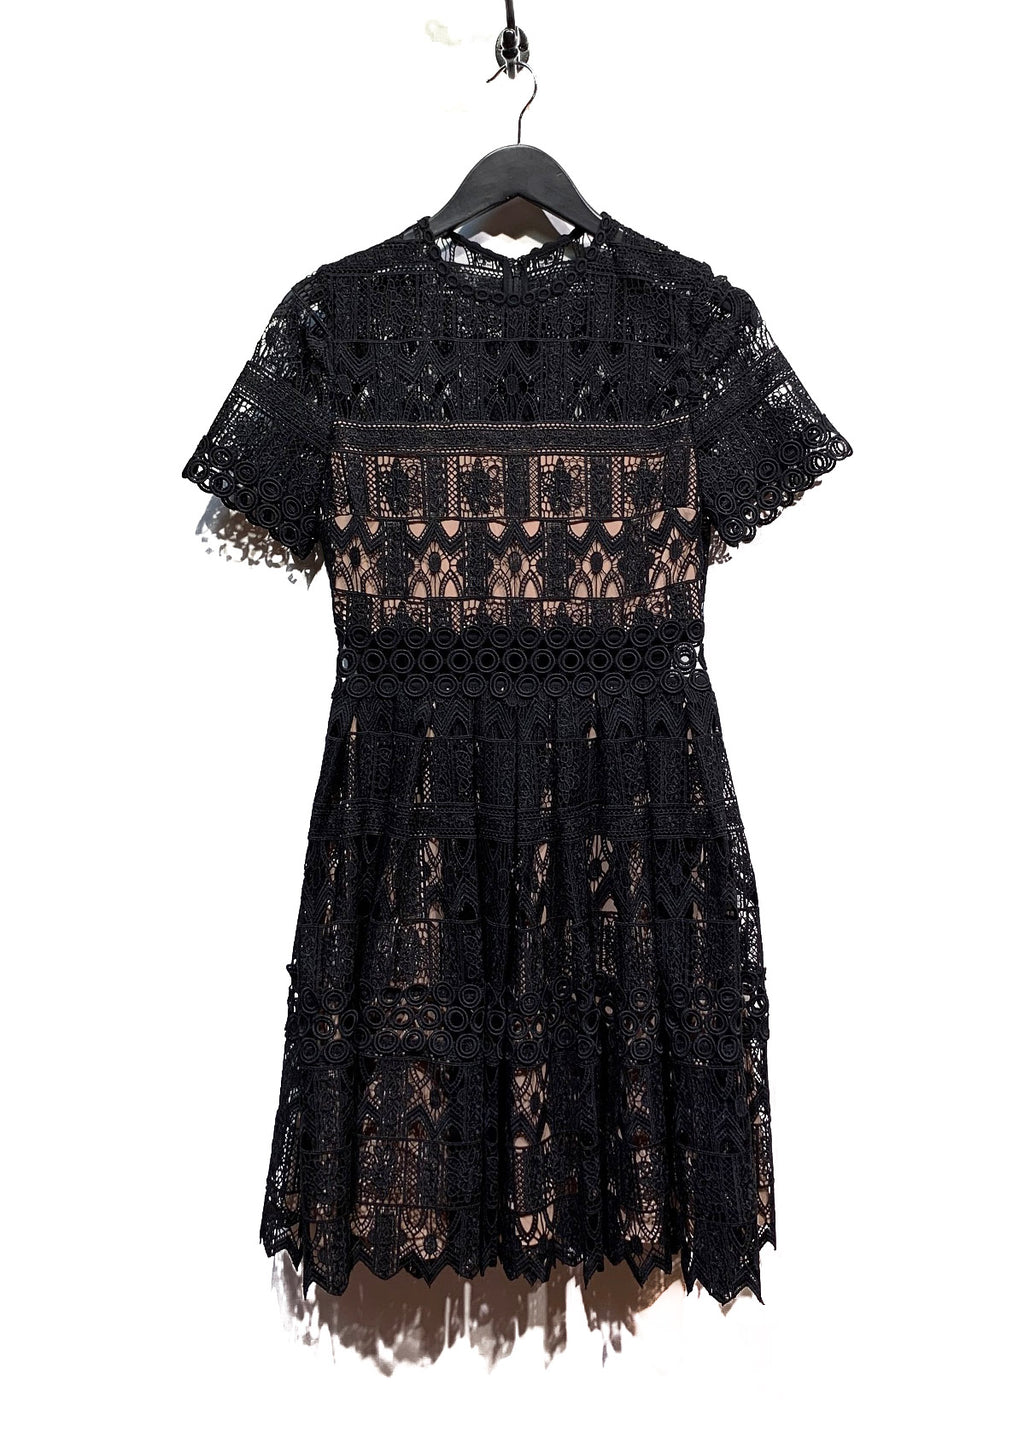 Alexis Black Lula Lace Short Dress